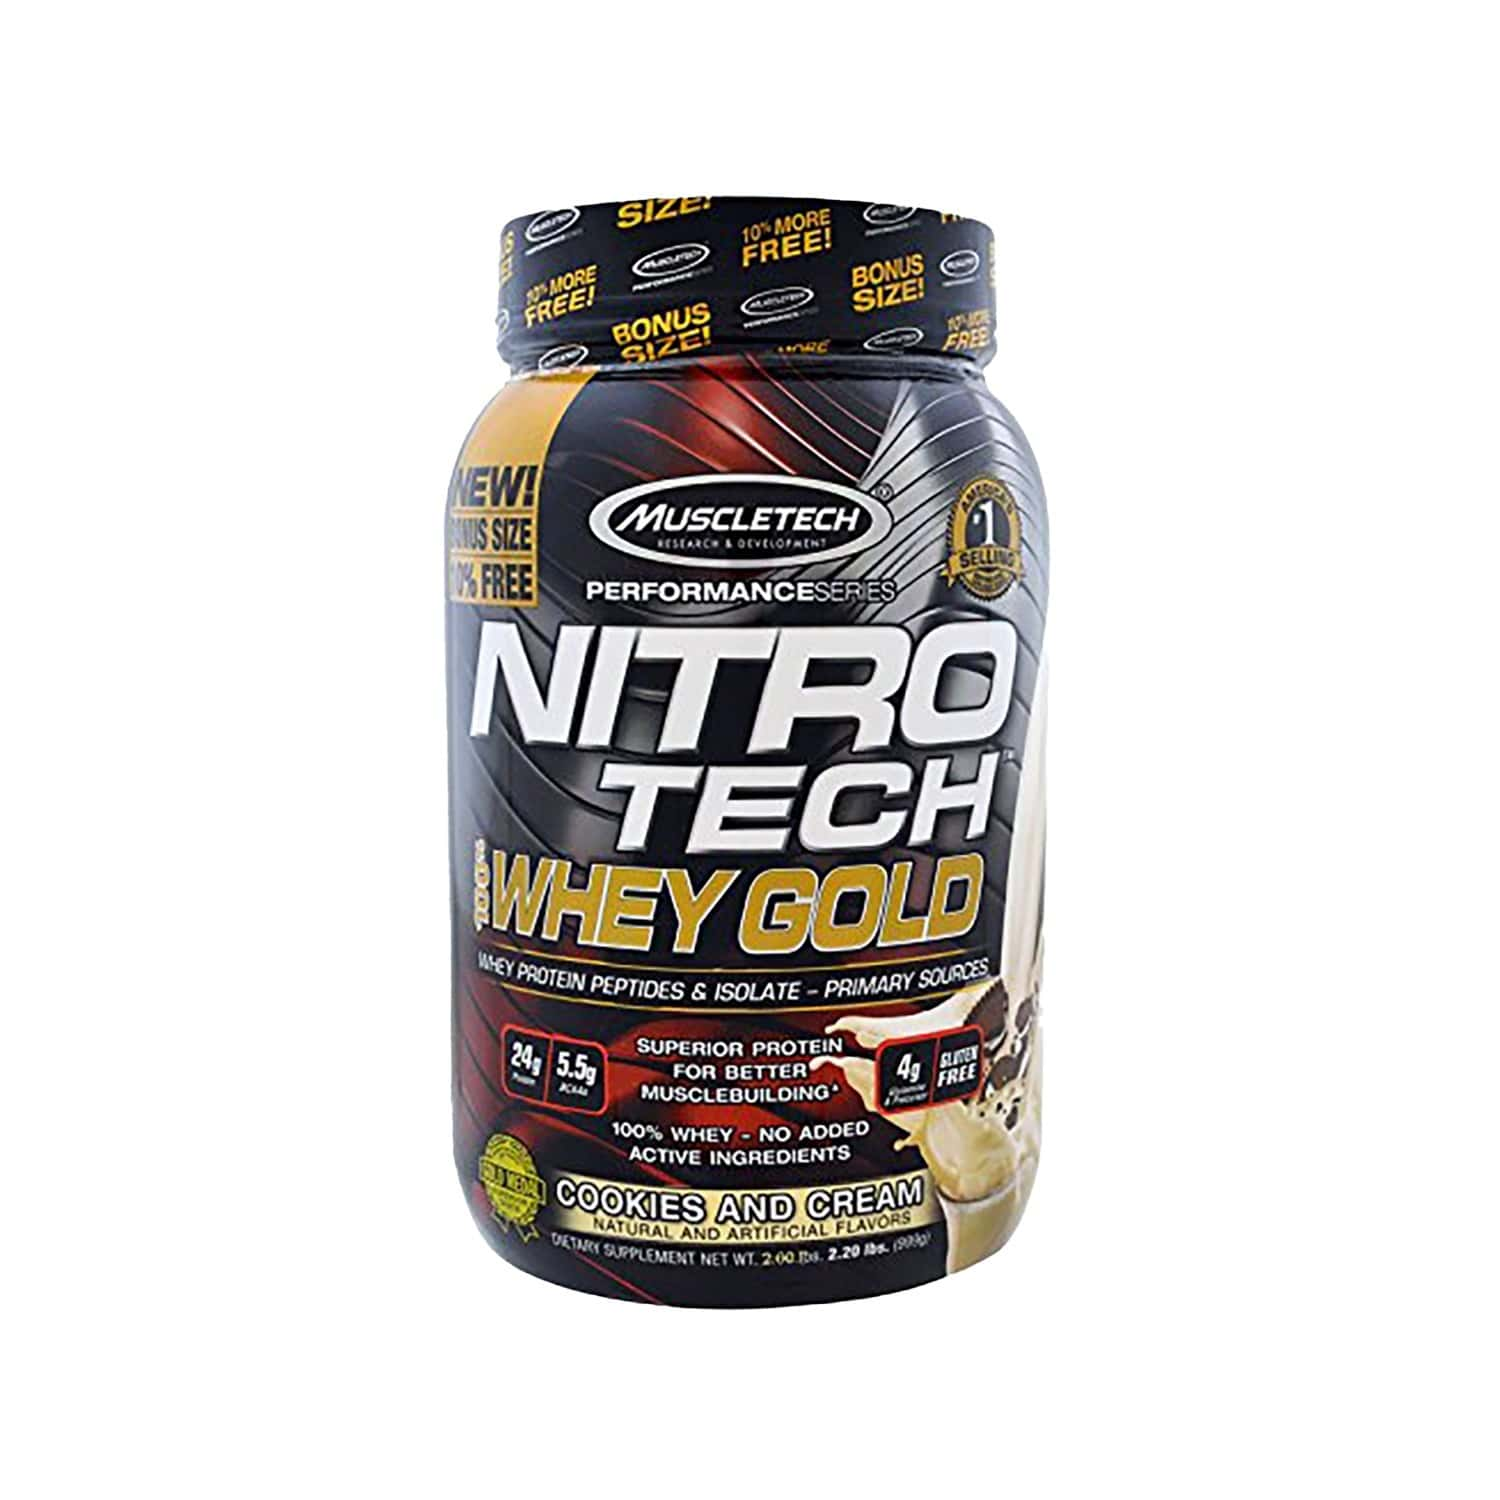 Muscletech Cookies And Cream Nitro Tech 100% Whey Gold - 1000 Gm